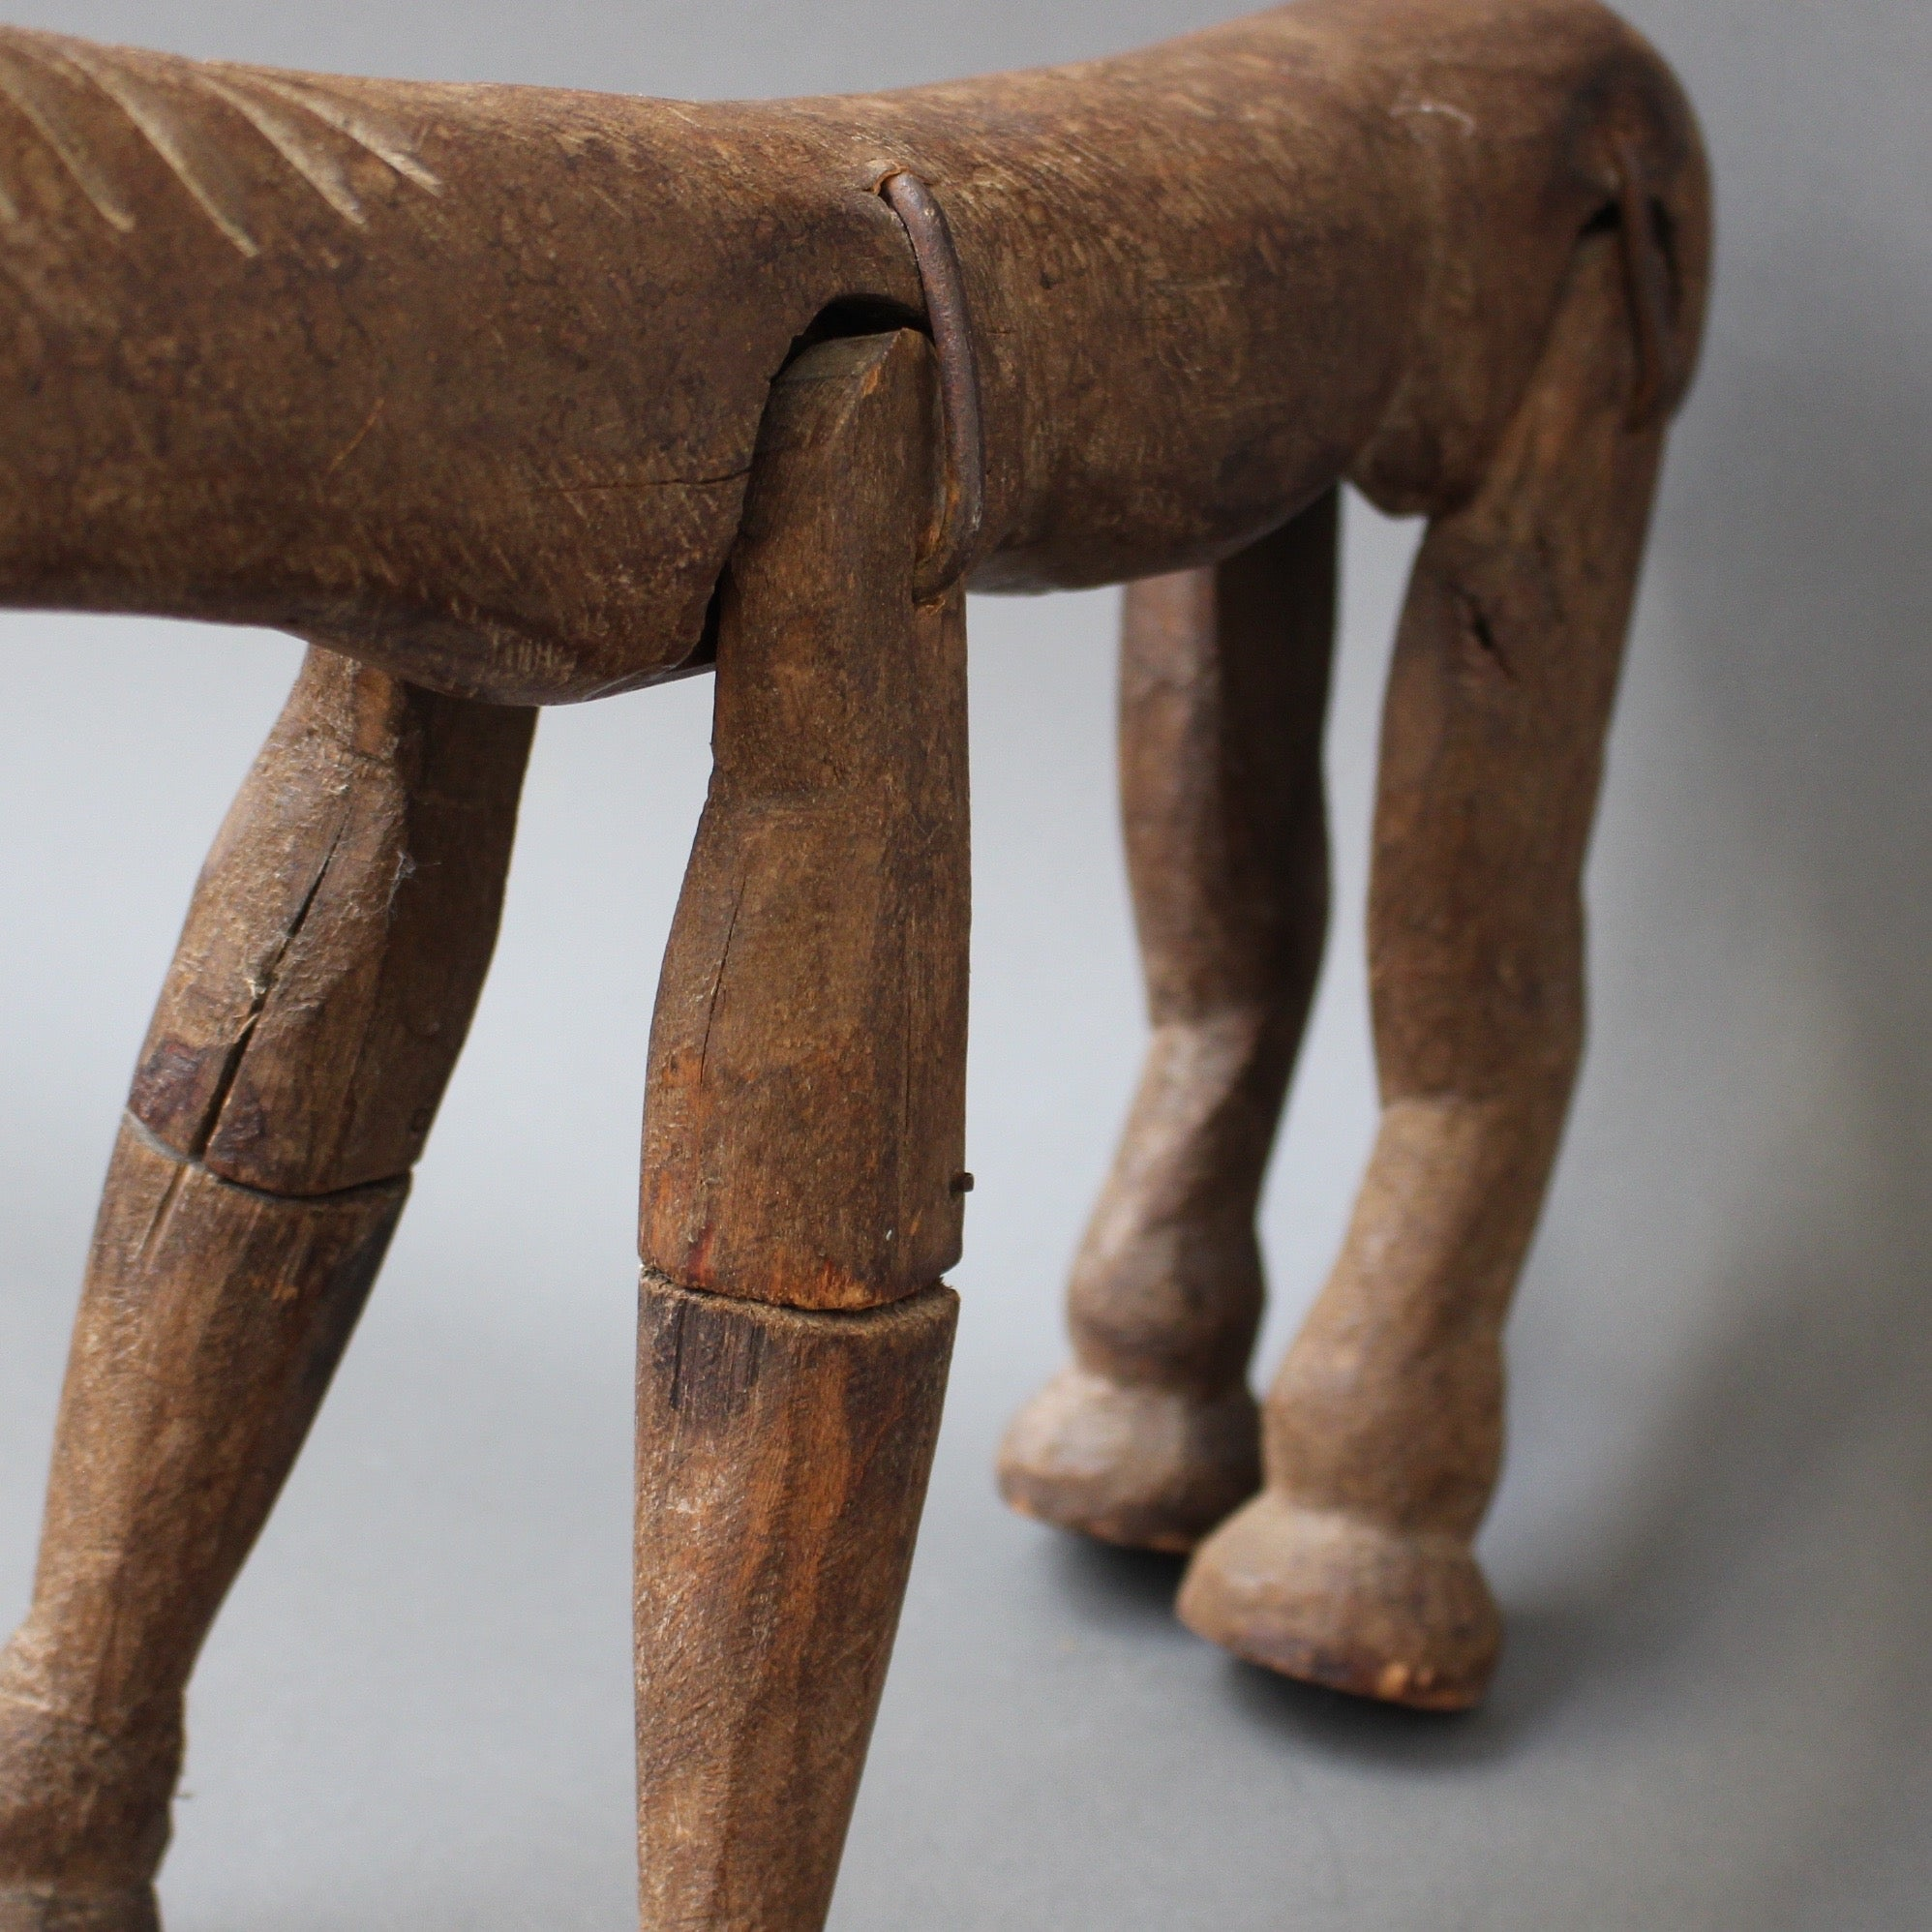 Antique Carved Wooden Horse Marionette (19th Century)